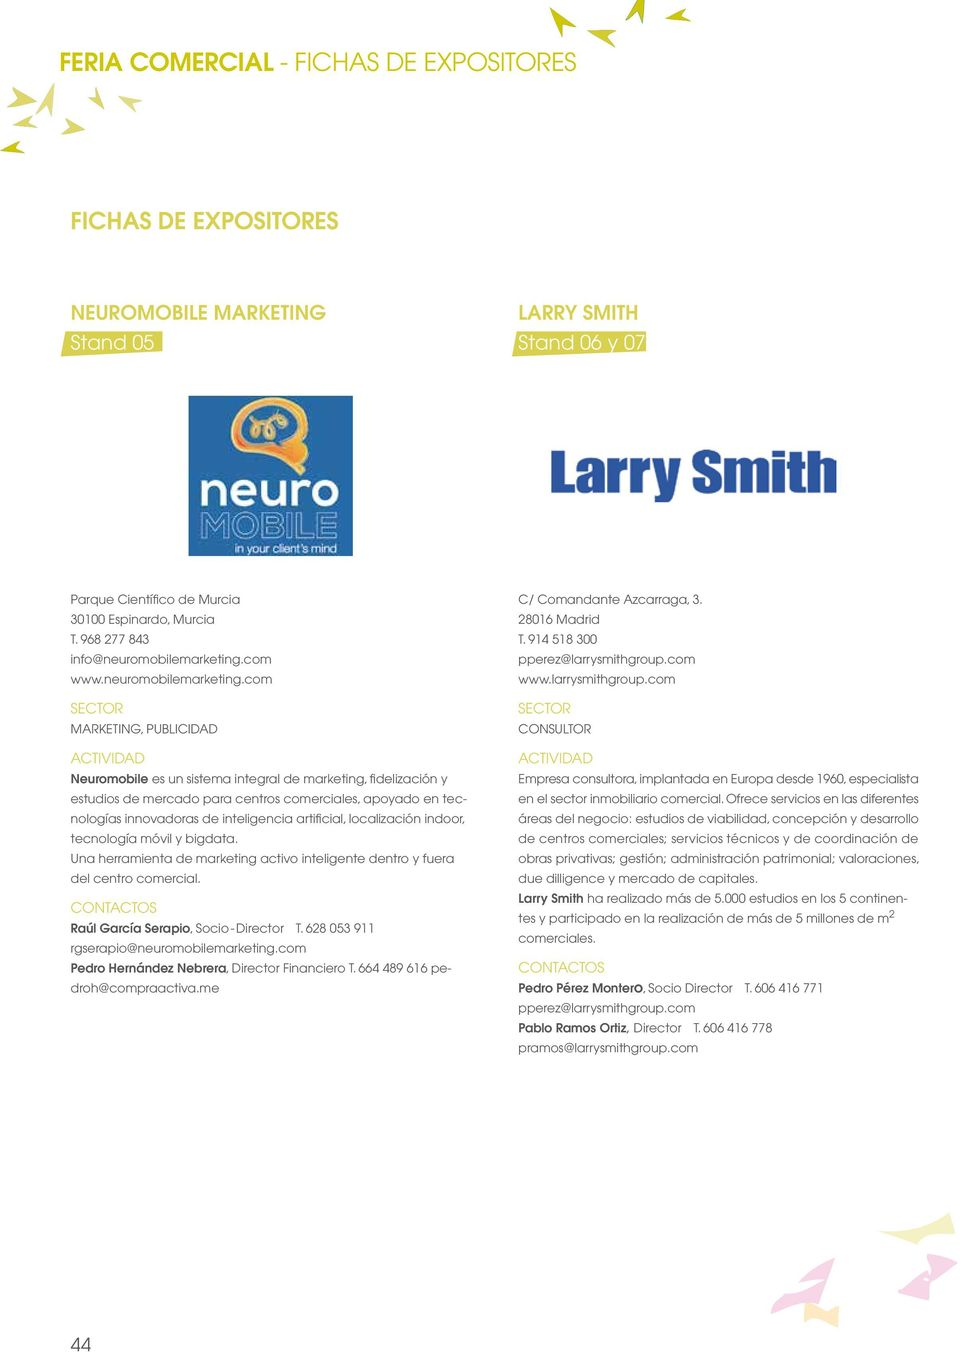 com MARKETING, PUBLICIDAD Neuromobile es un sistema integral de marketing, fidelización y estudios de mercado para centros comerciales, apoyado en tecnologías innovadoras de inteligencia artificial,